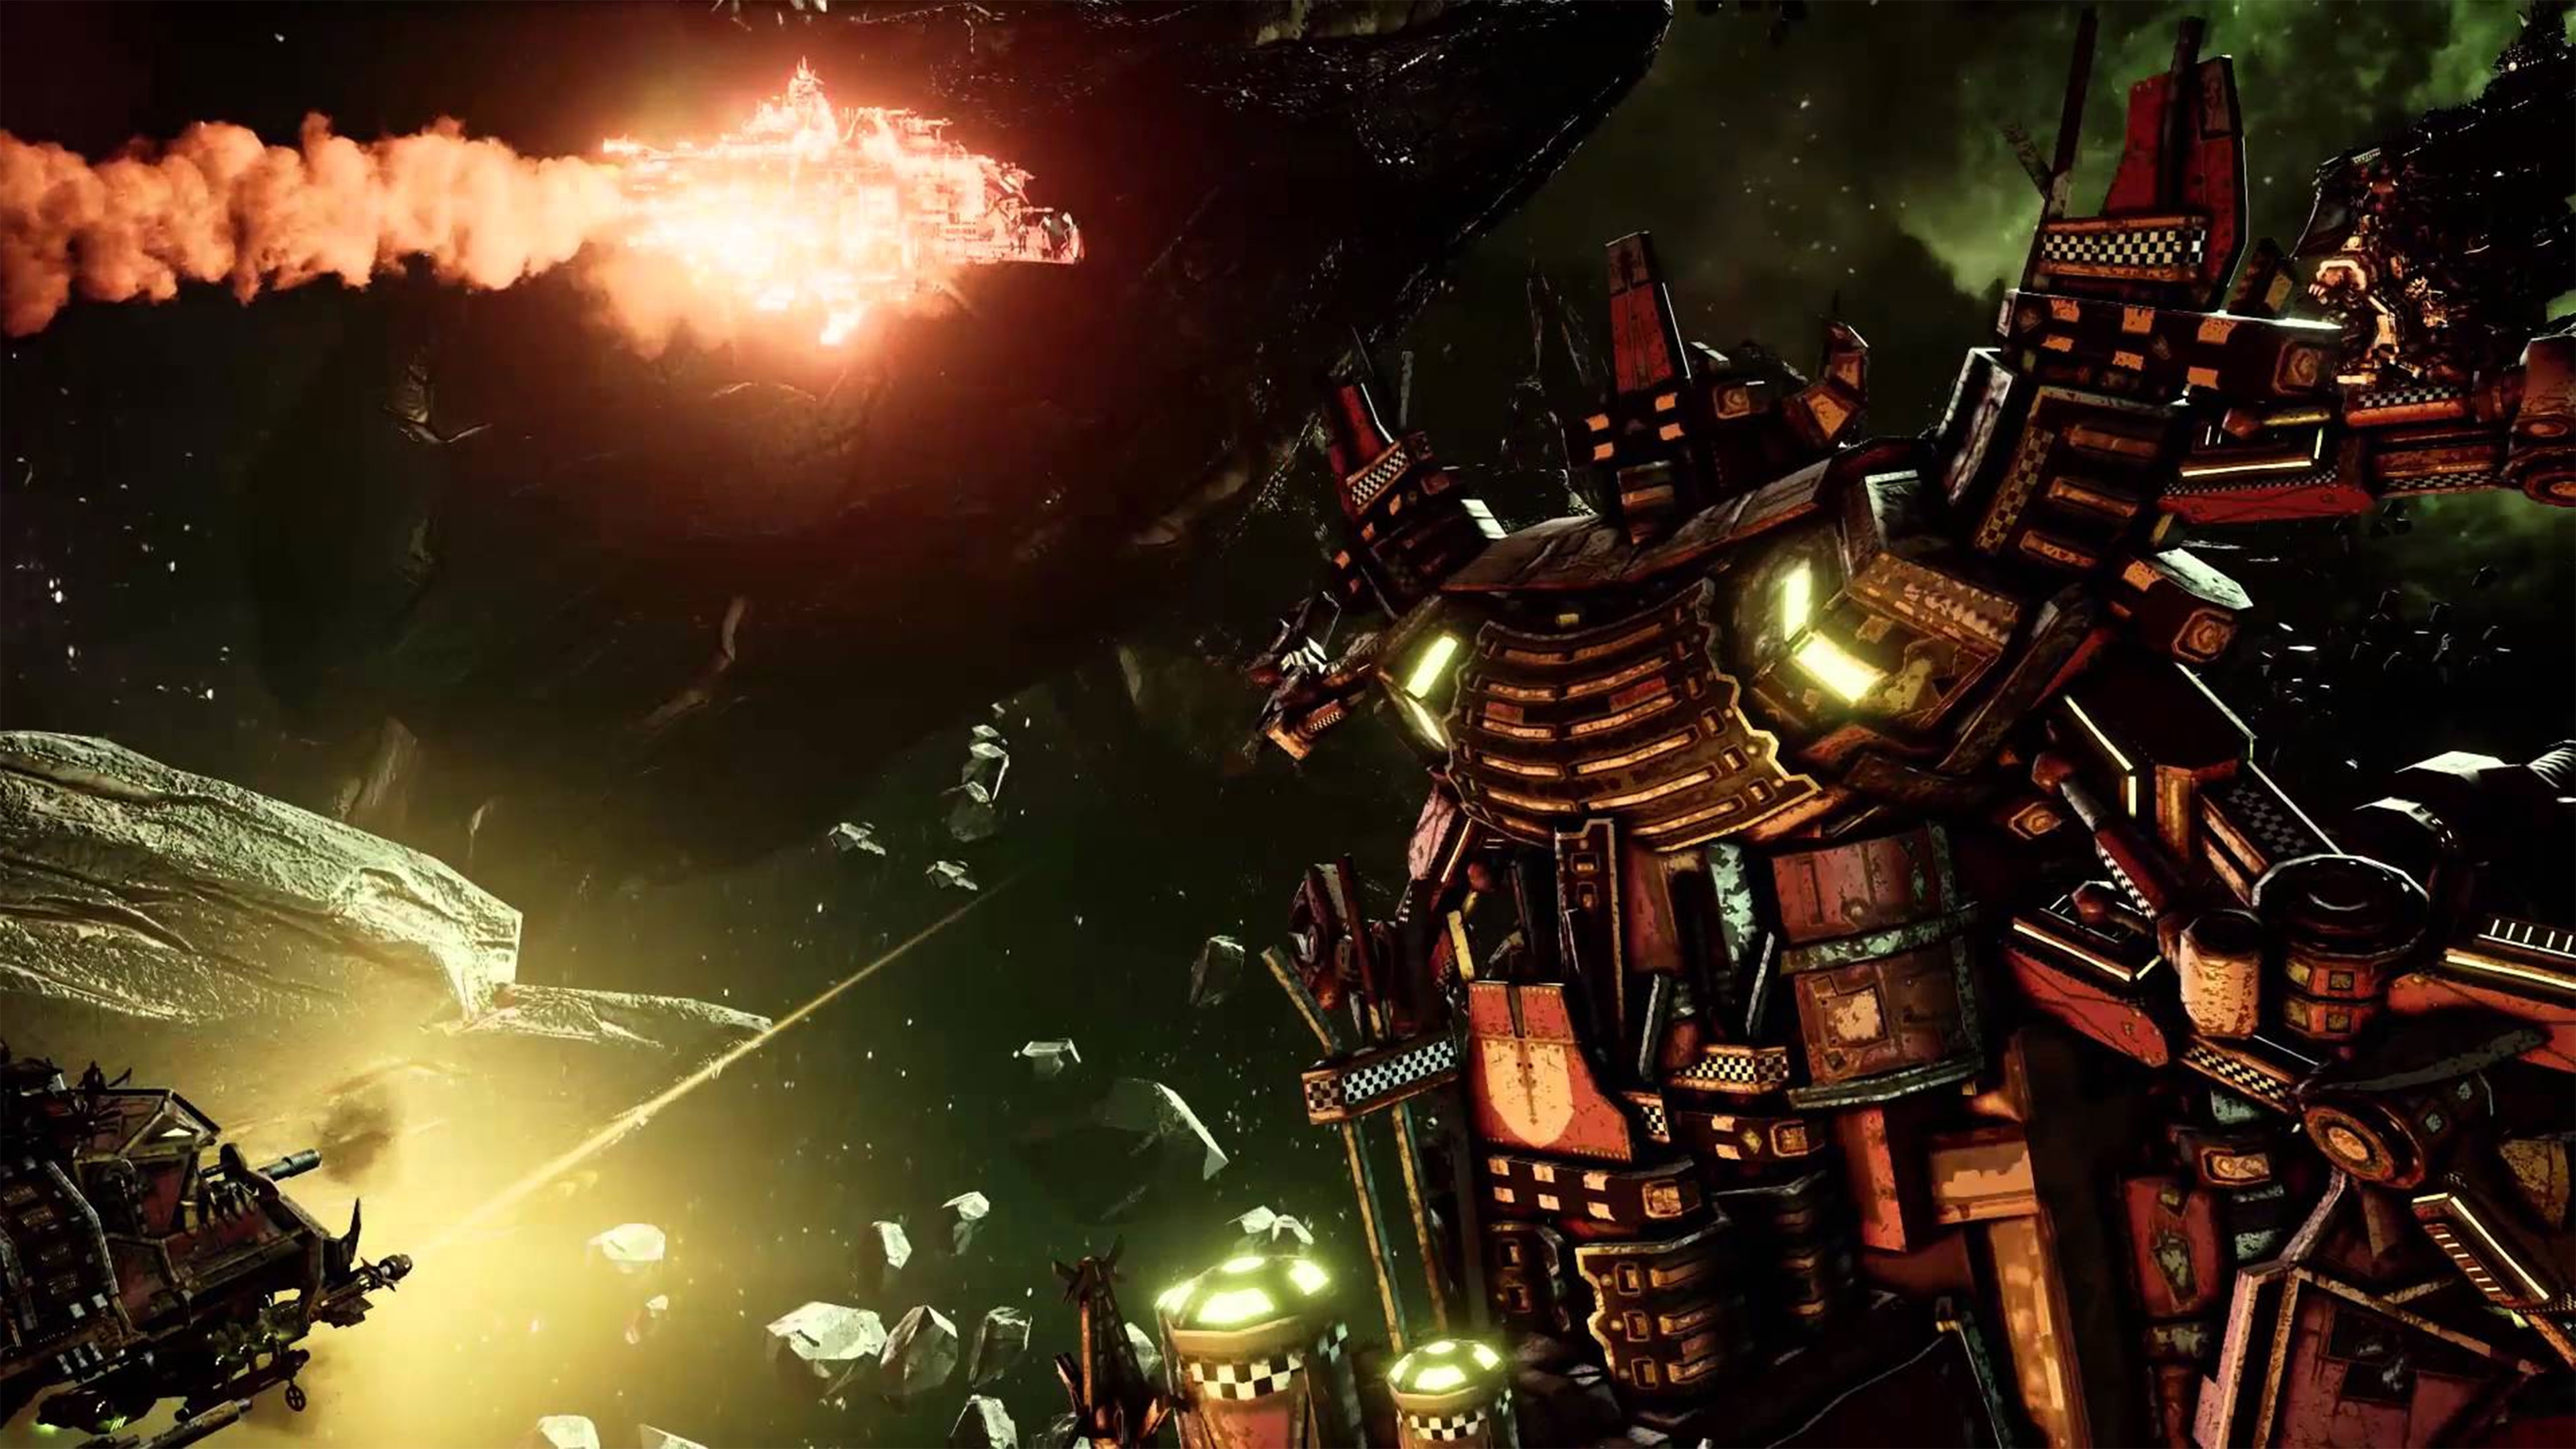 Battlefleet Gothic Armada Wallpapers In Ultra Hd 4k Gameranx